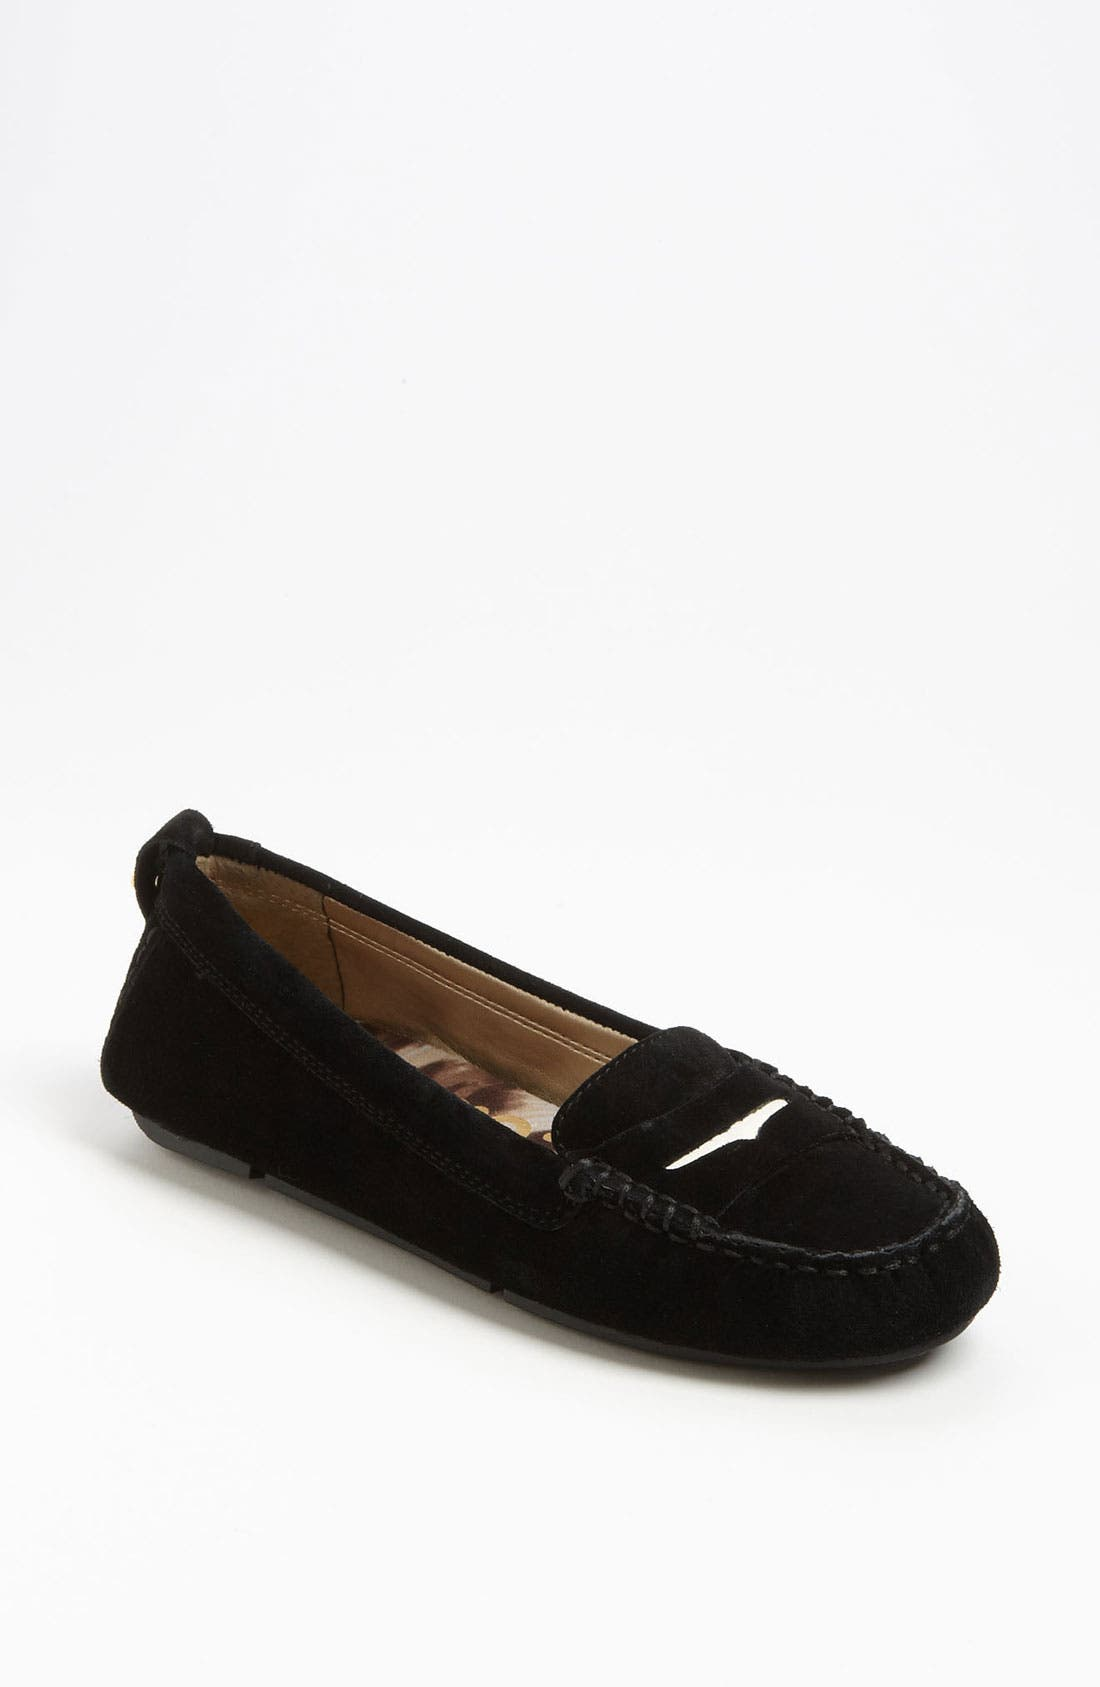 Main Image - Sam Edelman 'Jones' Flat